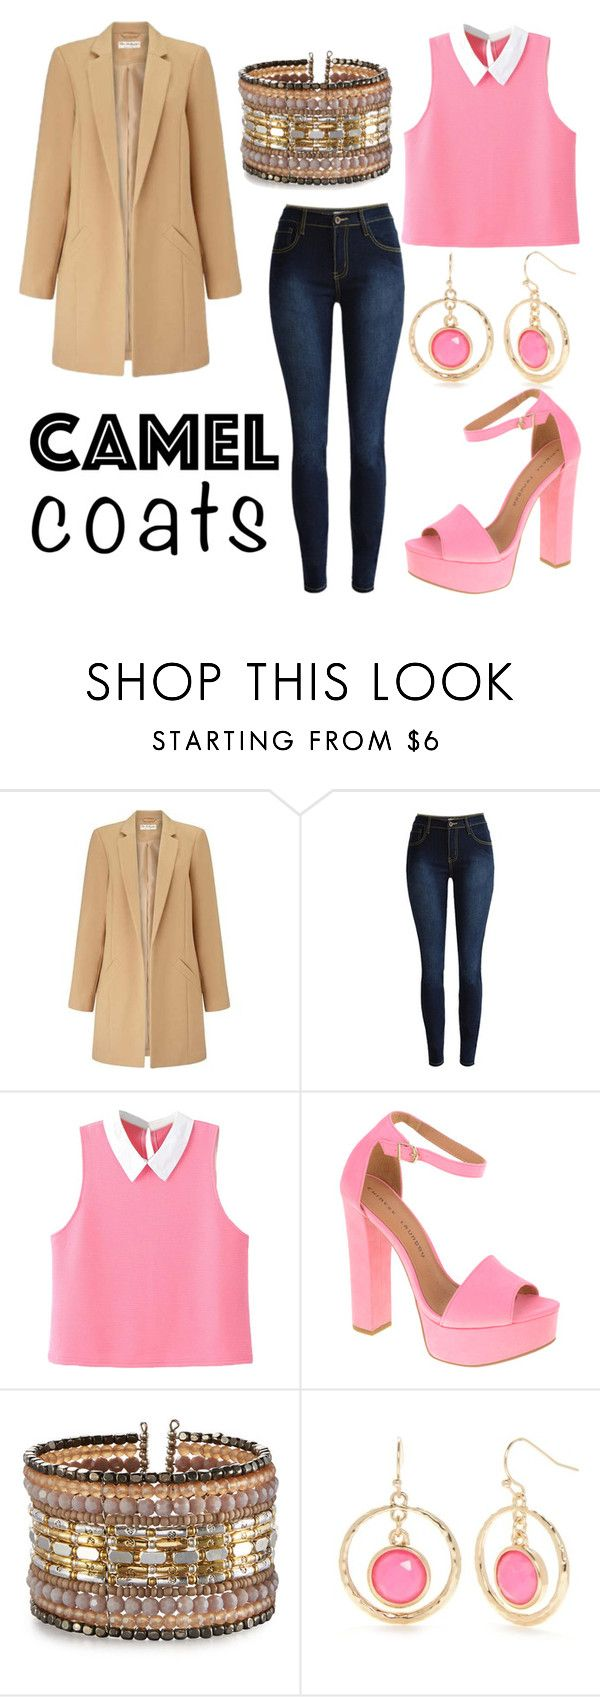 """Camel Coats"" by emma-swon ❤ liked on Polyvore featuring Miss Selfridge, WithChic, Chinese Laundry, NAKAMOL and New Directions"